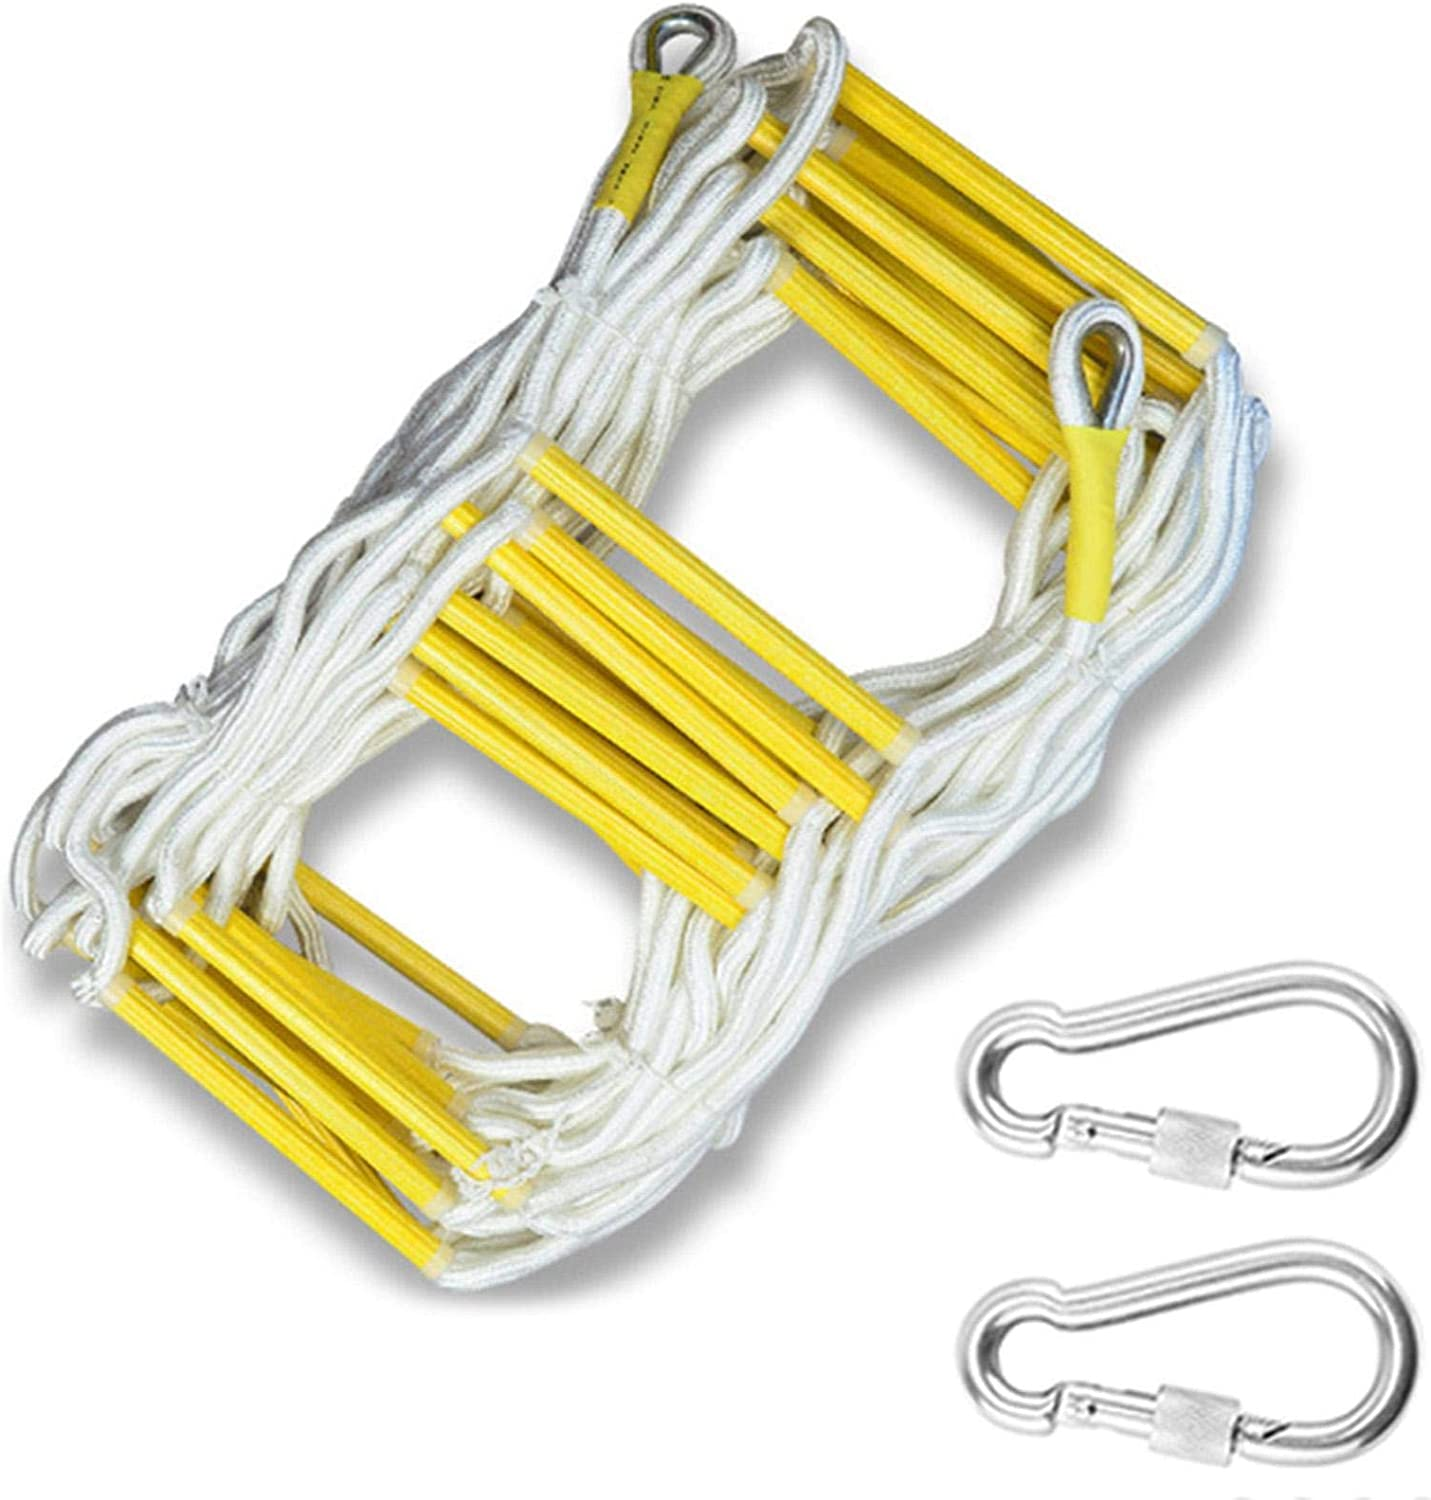 32 Ft Aoneky Fire Escape Rope Ladder 2-3 Story Fire Rescue Ladder Flame Resistant Emergency Fire Safety Evacuation Ladder with Hook Carabins for Kids and Adults